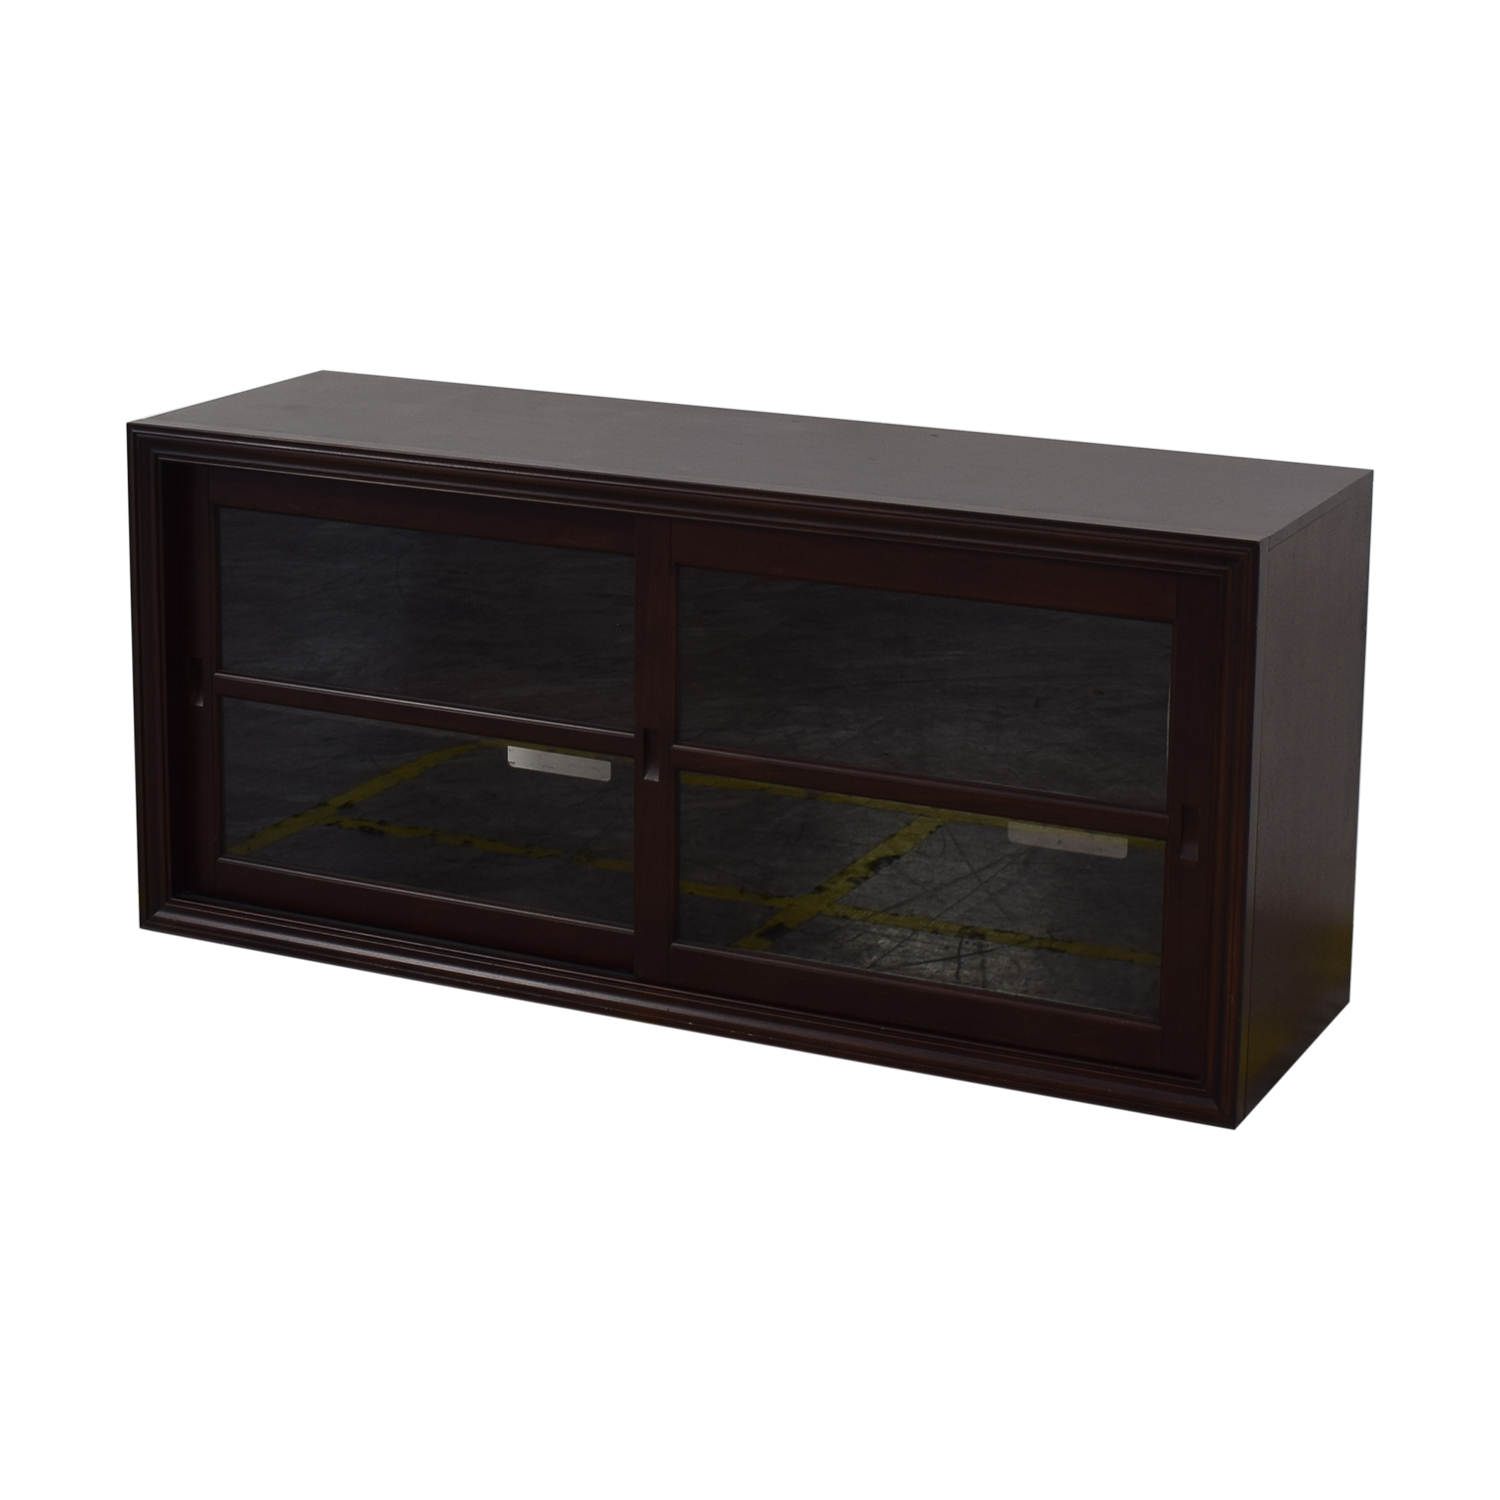 Outstanding 78 Off Pottery Barn Pottery Barn Winslow Glass Door Media Stand Storage Home Interior And Landscaping Ferensignezvosmurscom